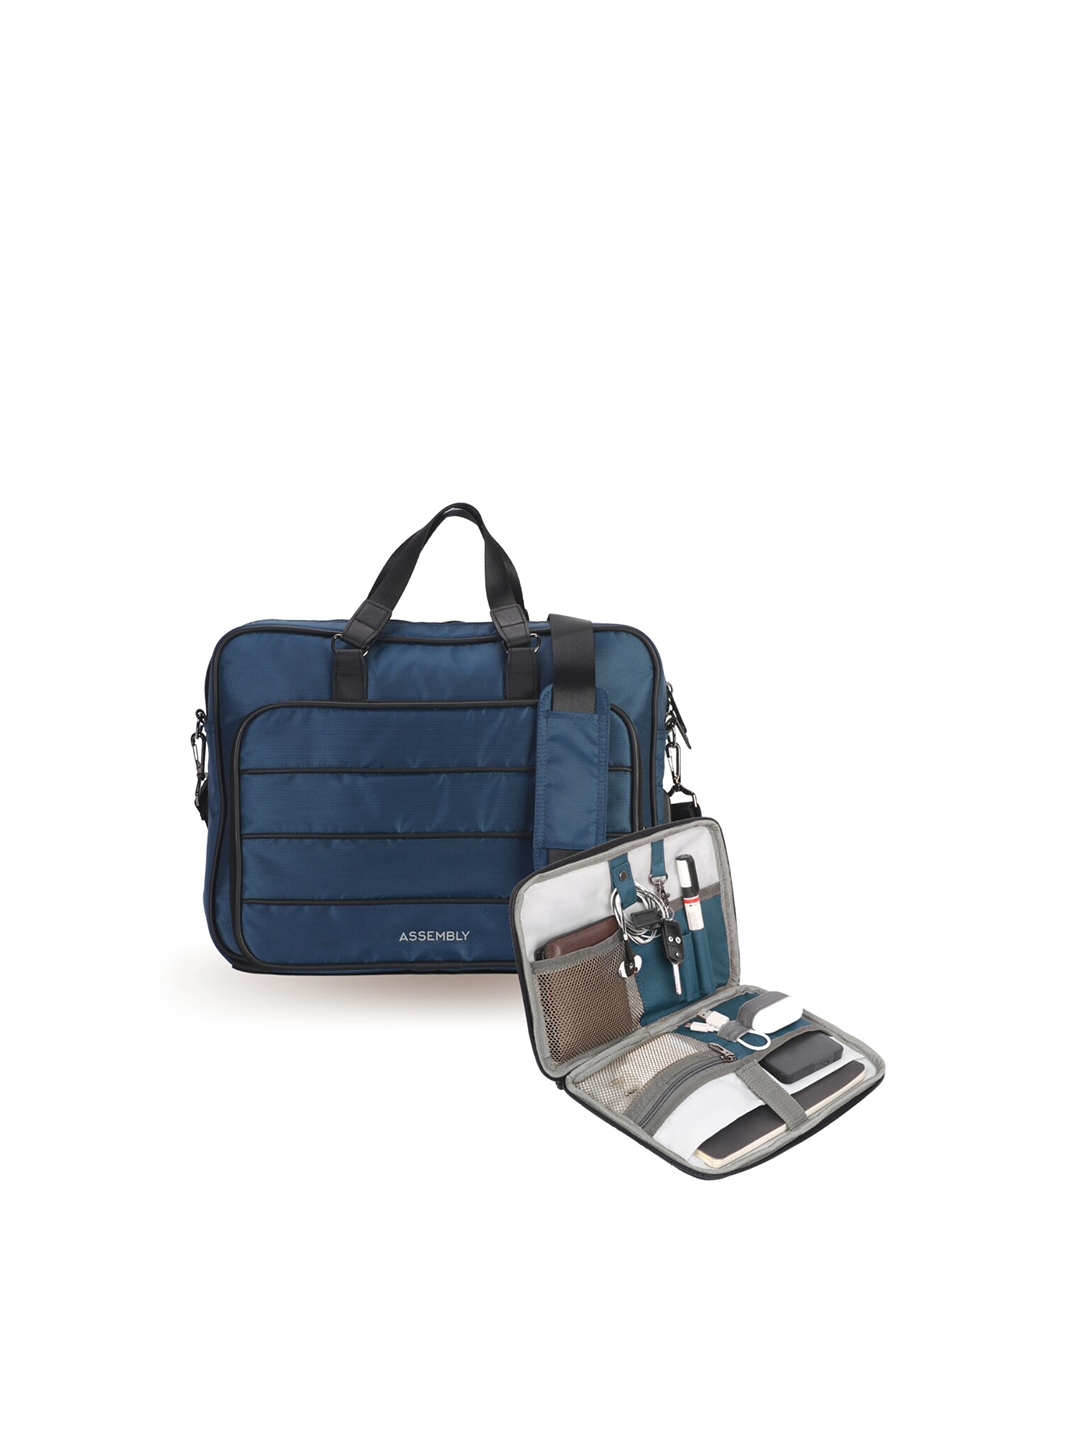 THE ASSEMBLY Unisex Blue   Black Solid Formal Laptop Bag With Tech Kit Gadget Organizer